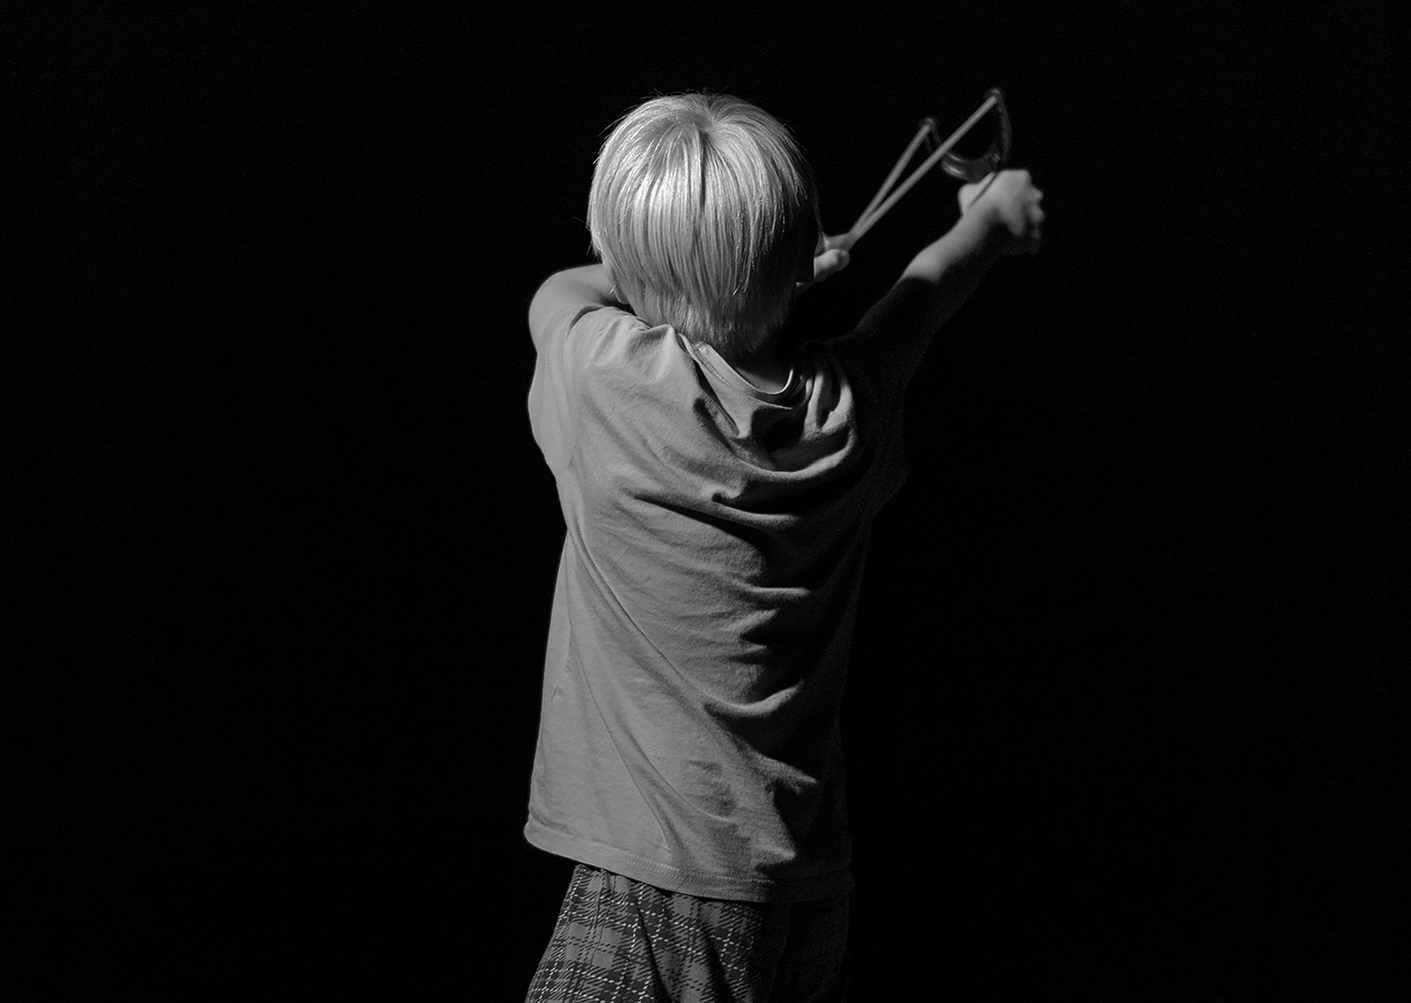 Boy aiming a slingshot